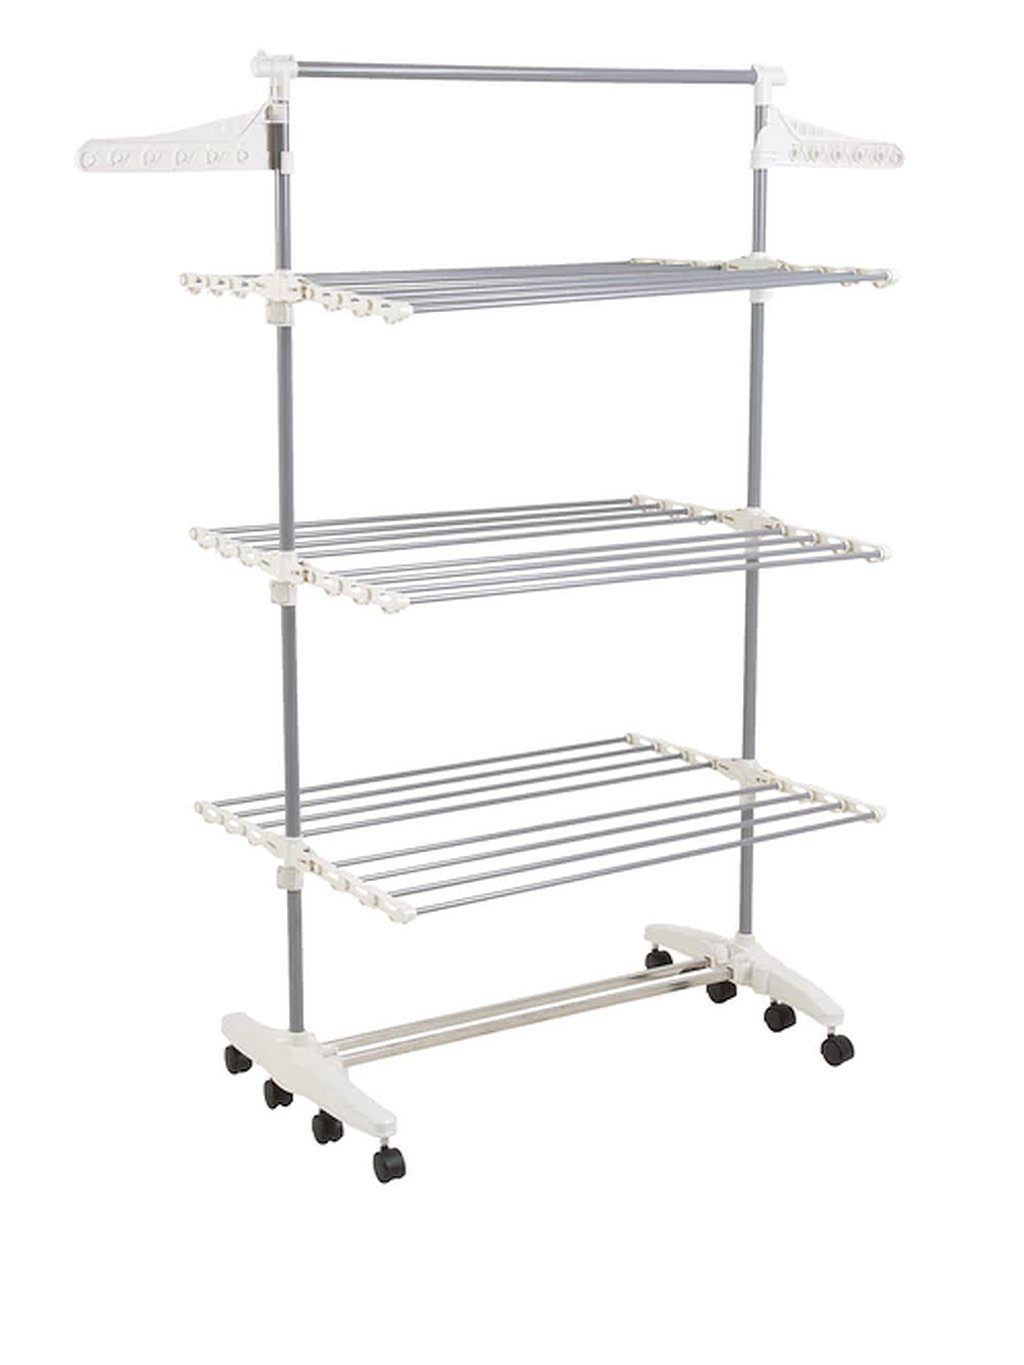 8 Transitions Stainless Rolling Steel Clothes Drying Rack, Dimensions 27Lx58.5Wx60H